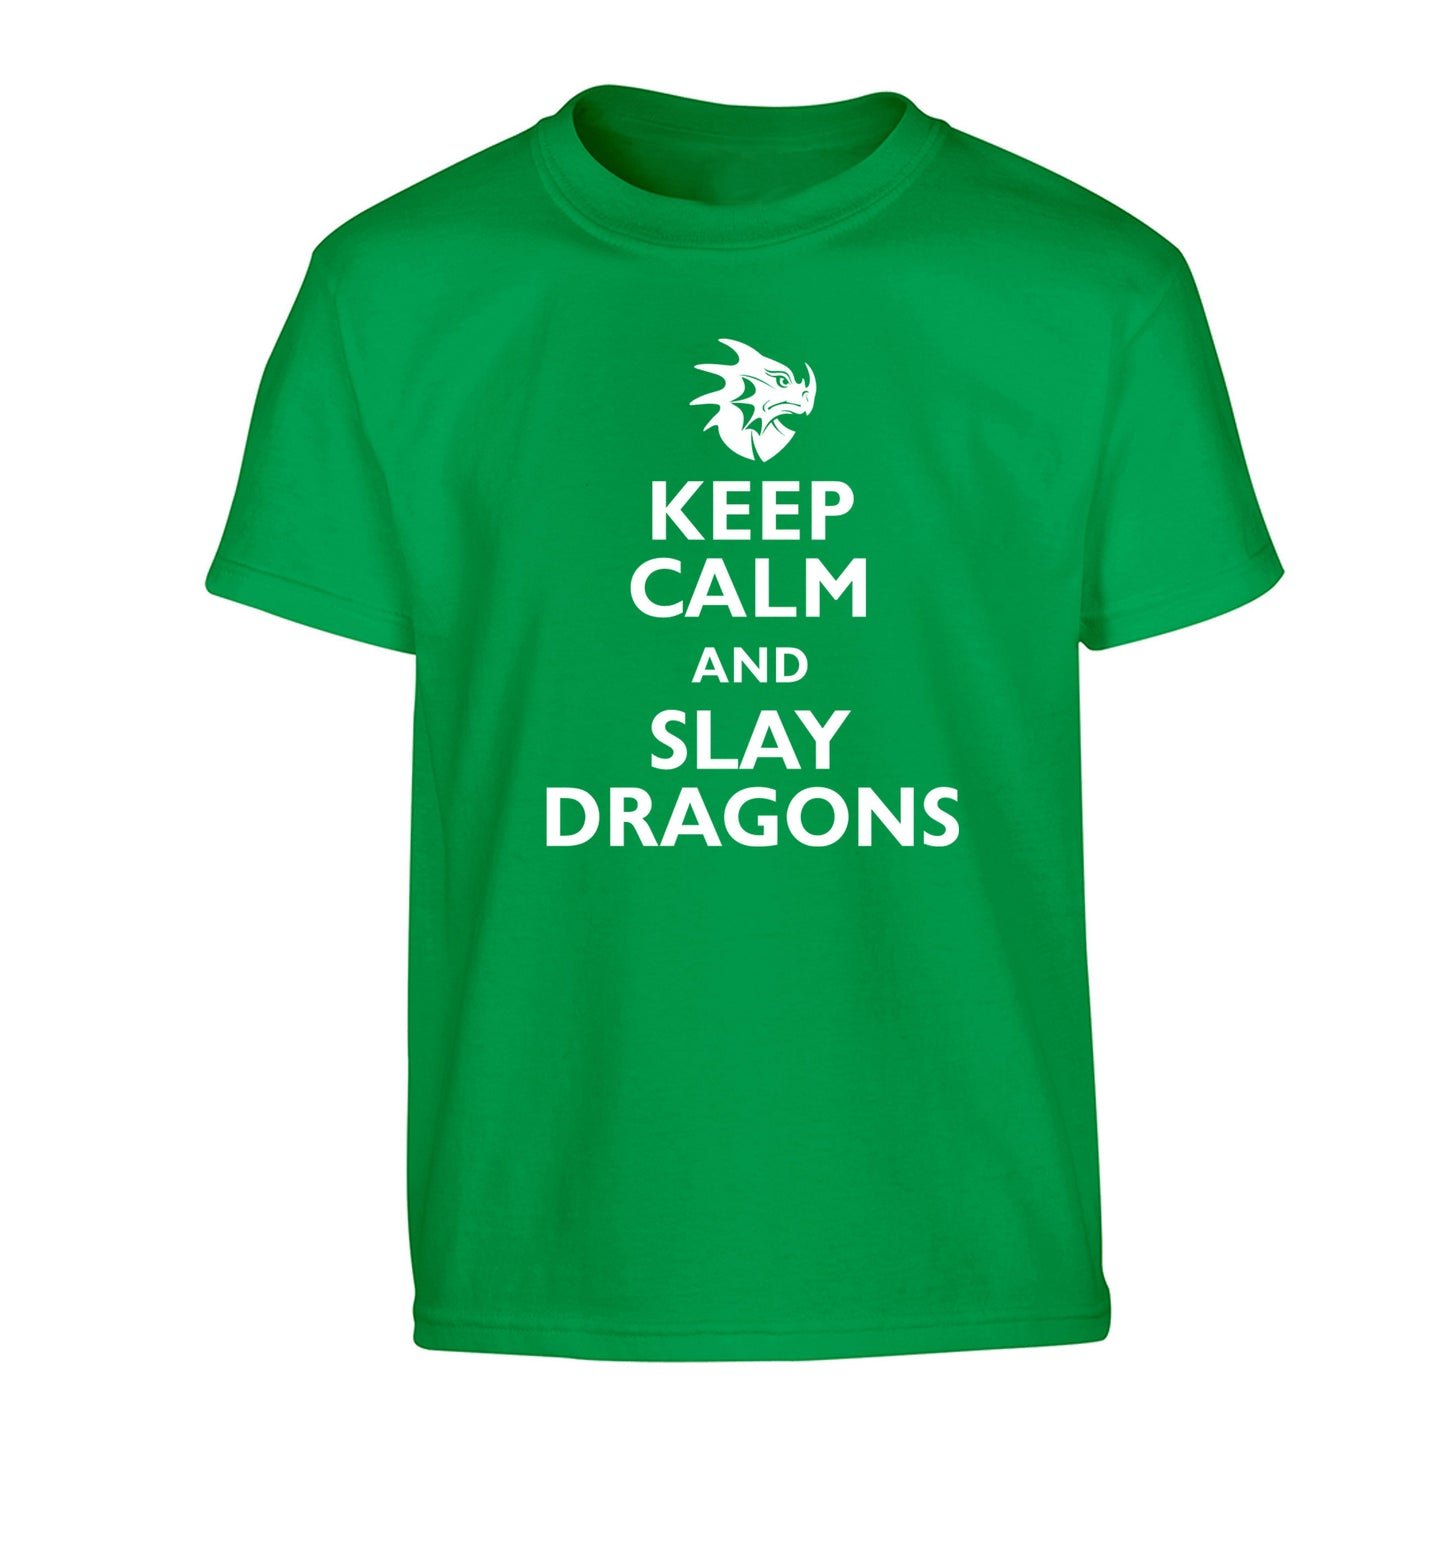 Keep calm and slay dragons Children's green Tshirt 12-14 Years